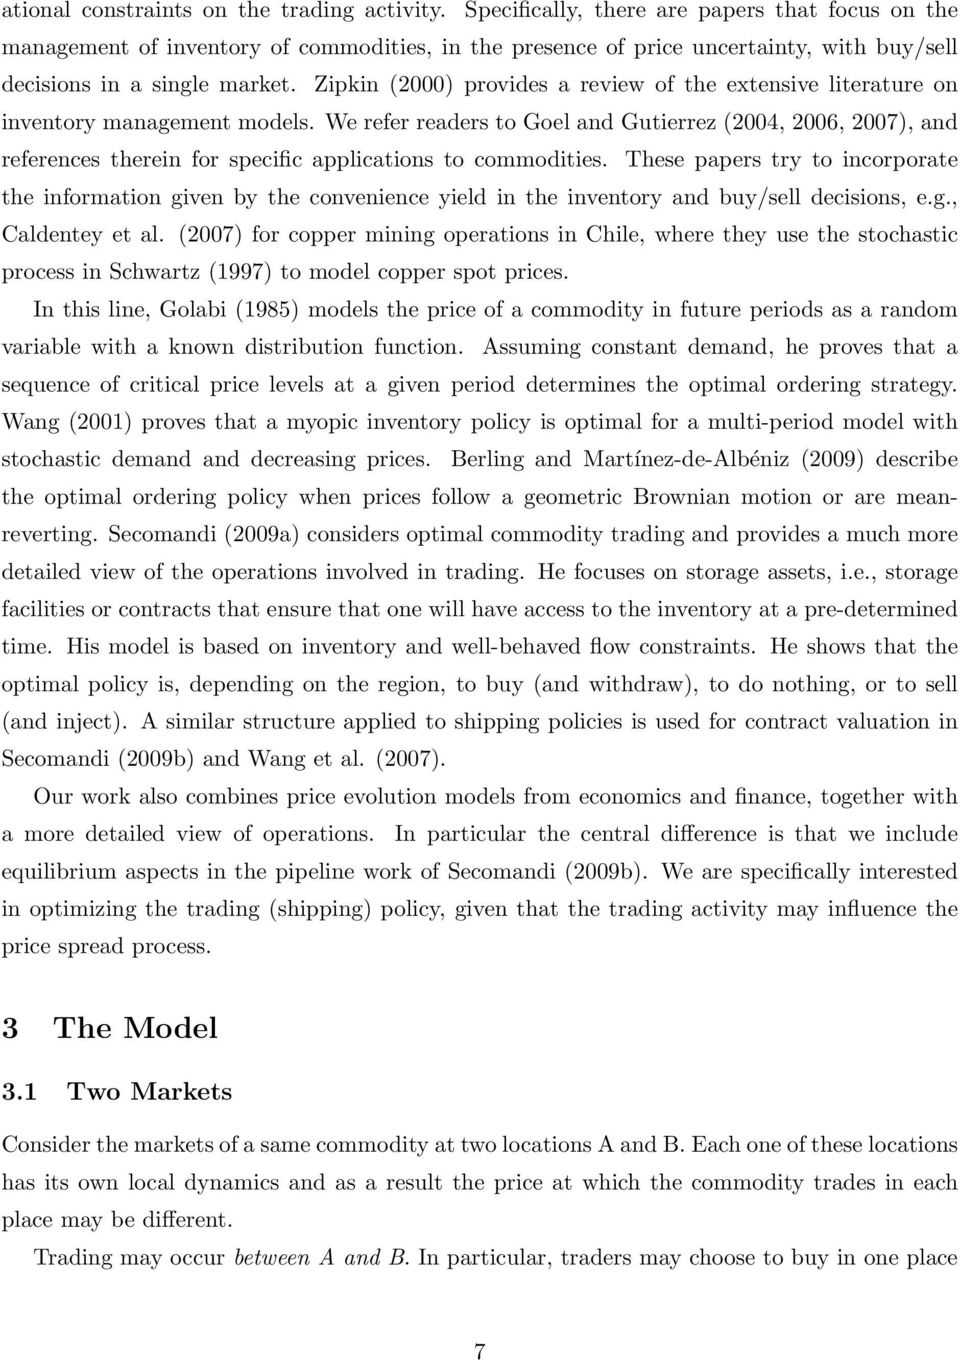 Zipkin (000) povides a eview of the extensive liteatue on inventoy management models. We efe eades to Goel and Gutieez (004, 006, 007), and efeences theein fo specific applications to commodities.